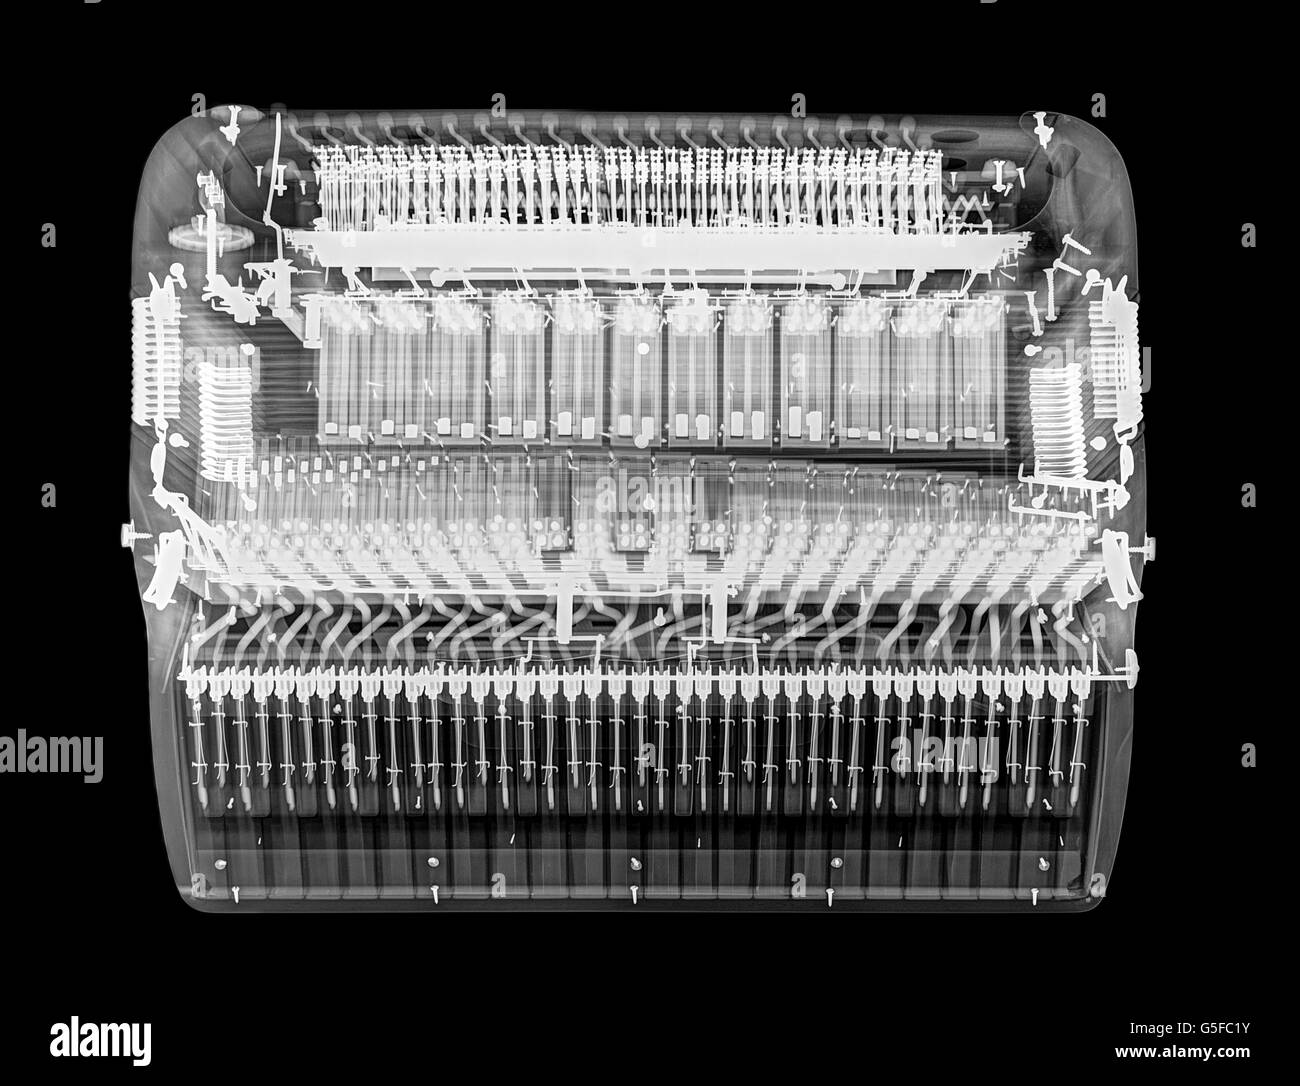 X-ray of an Accordion on black background - Stock Image